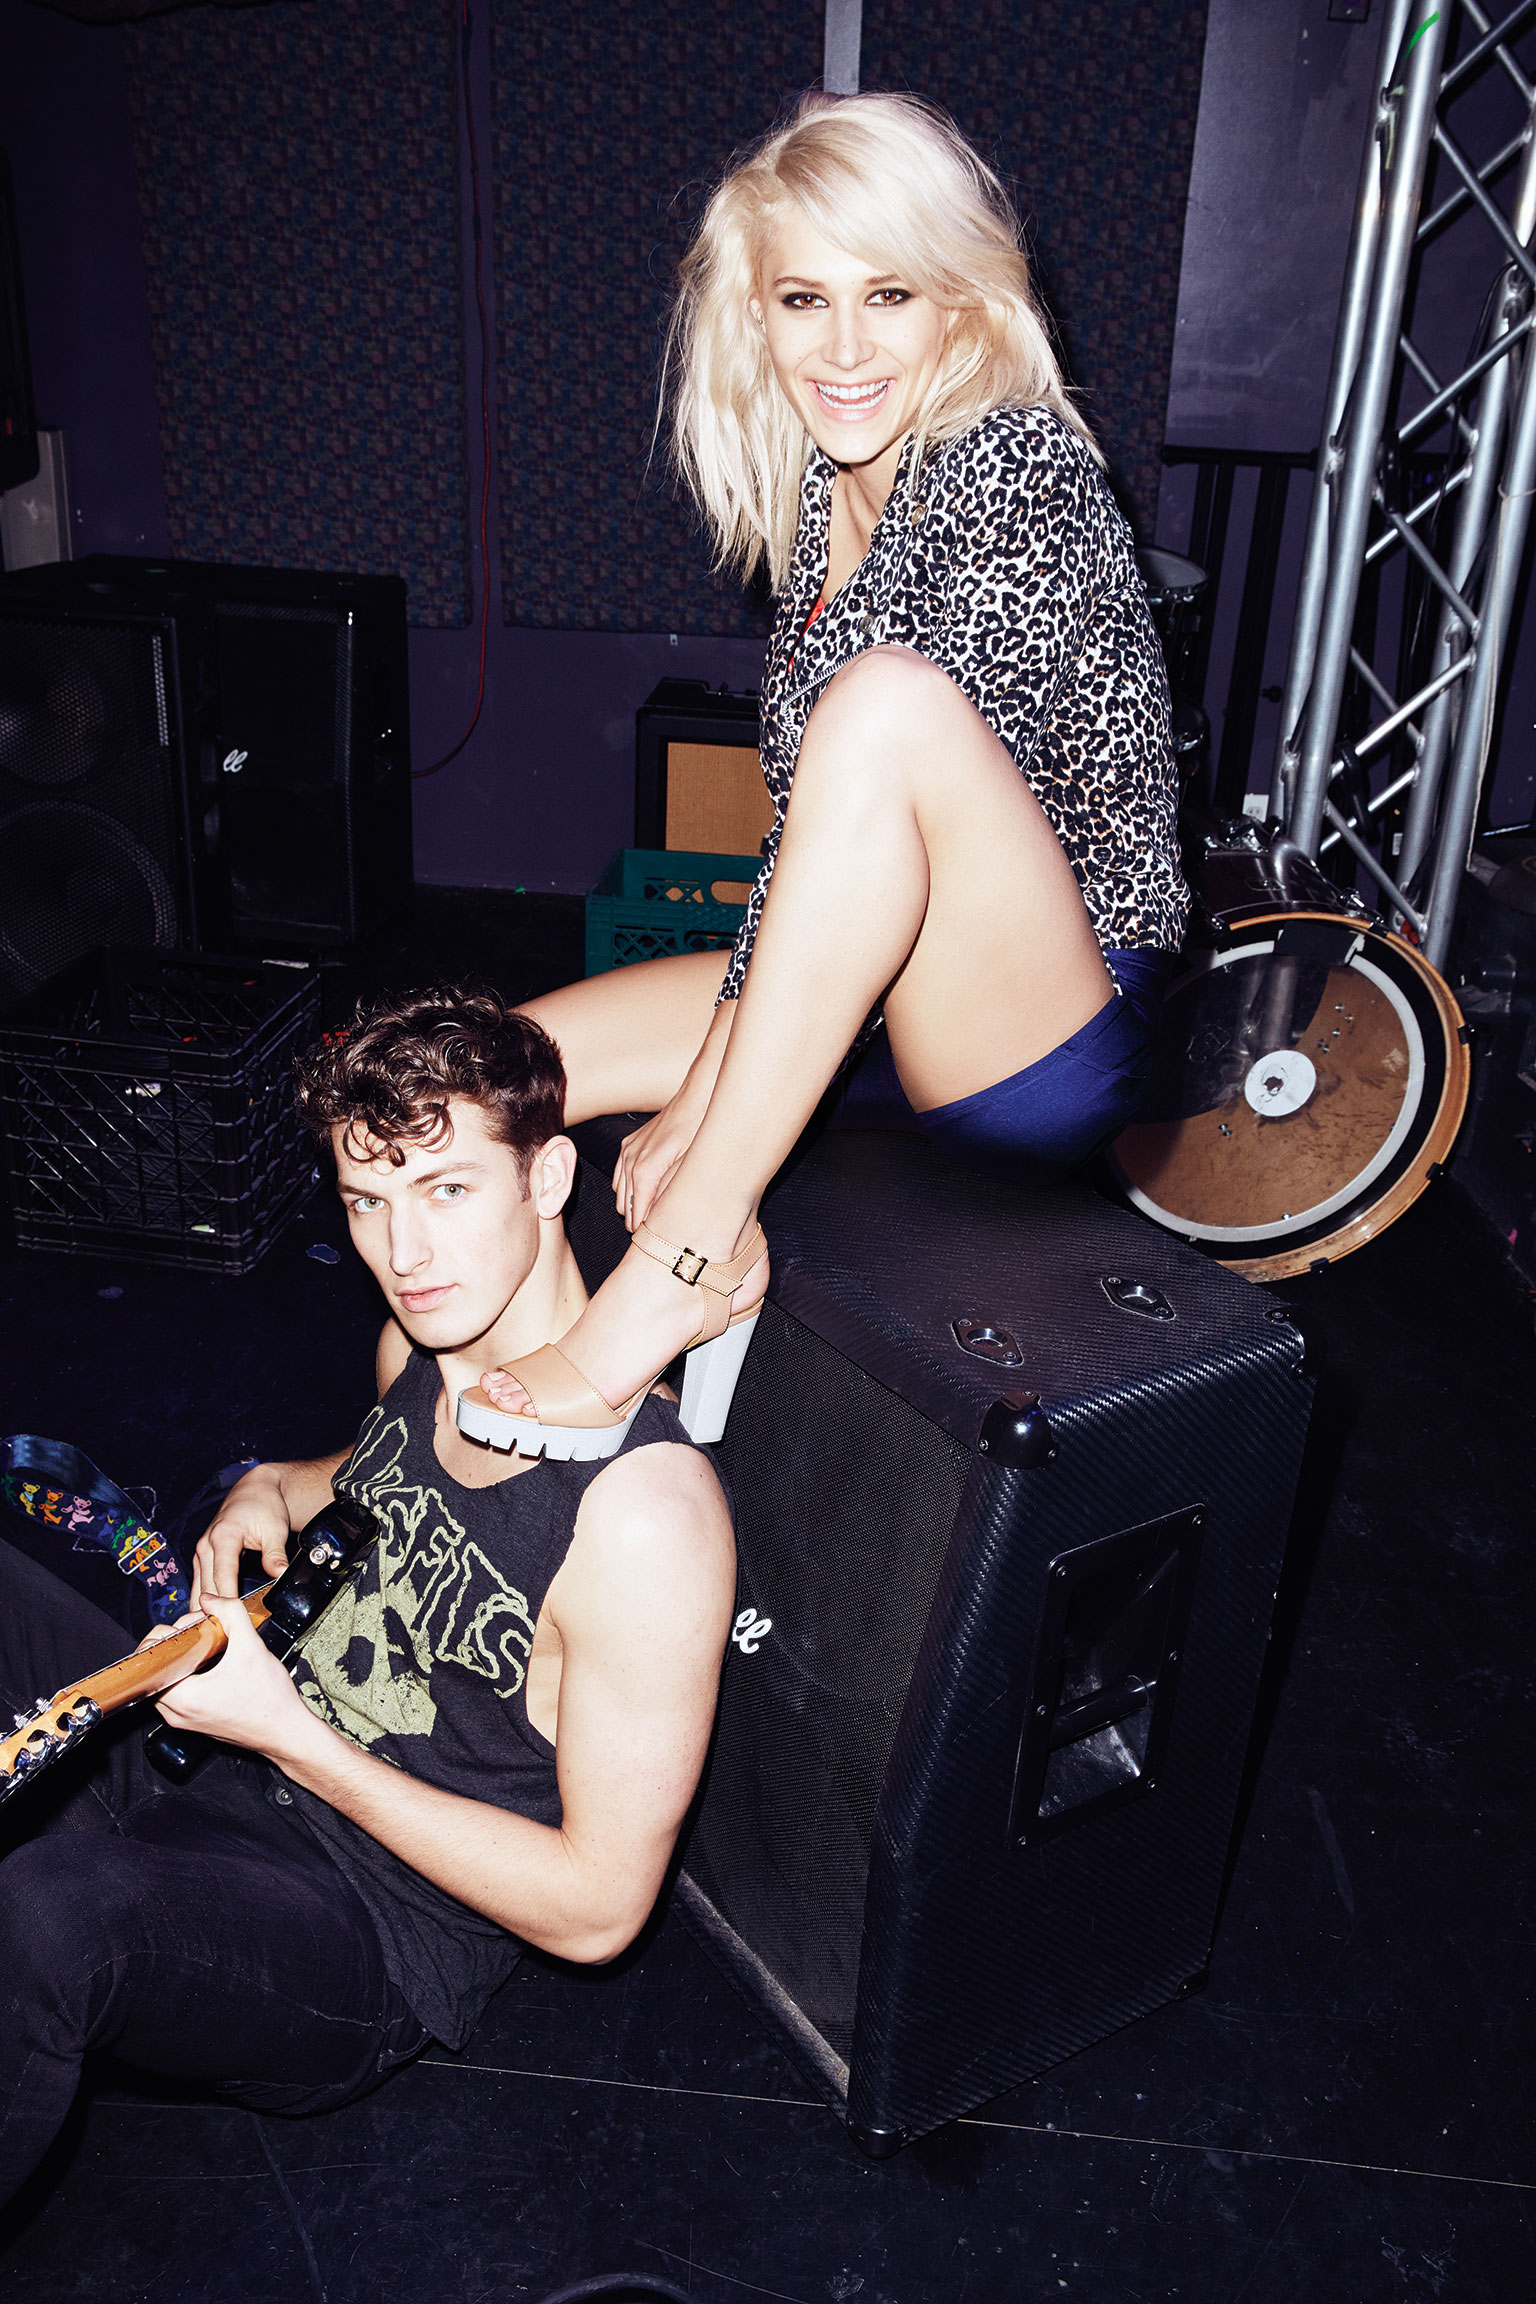 STEVE-MADDEN-SS15-CAMPAIGN-STYLED-BY-ANDREA-MESSIER-CUOMO-5.jpg